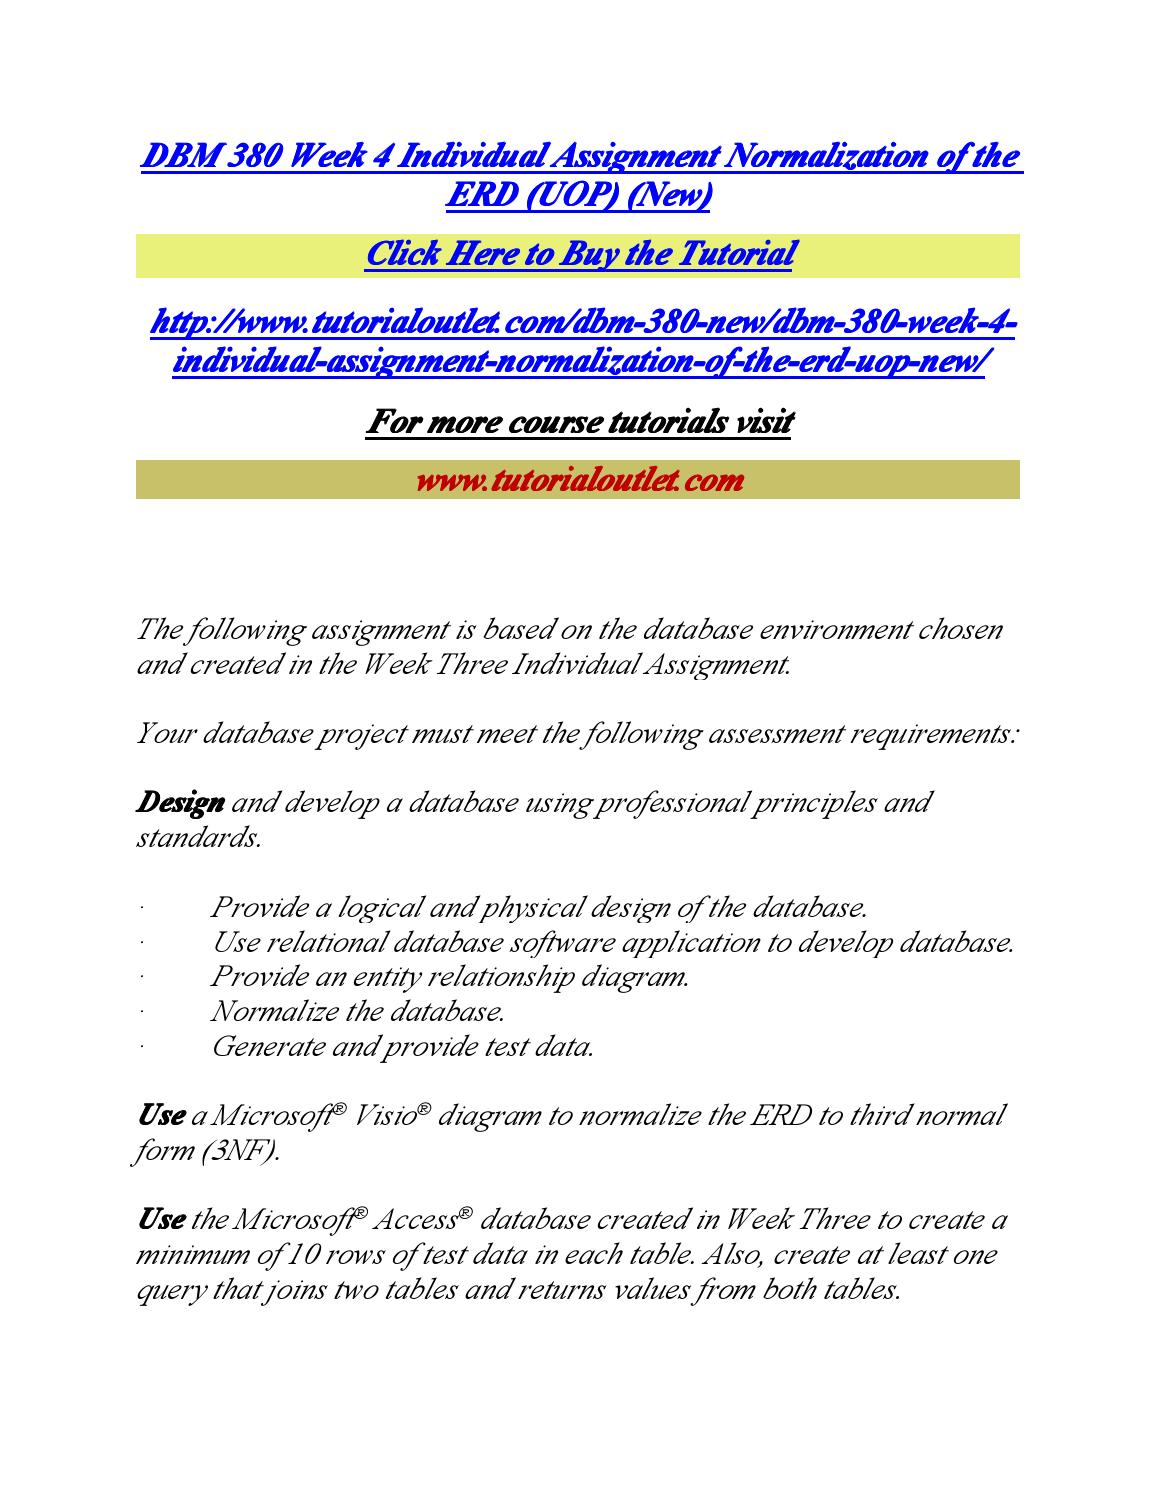 assignment 2 normalization Get your digital edition of cis 111 week 6 assignment 2 normalization (2 papers) cis 111 week 6 assignment 2 normalization (2 paper subscriptions and issues online from joomag buy, download and read cis 111 week 6 assignment 2 normalization (2 papers) cis 111 week 6 assignment 2 normalization.